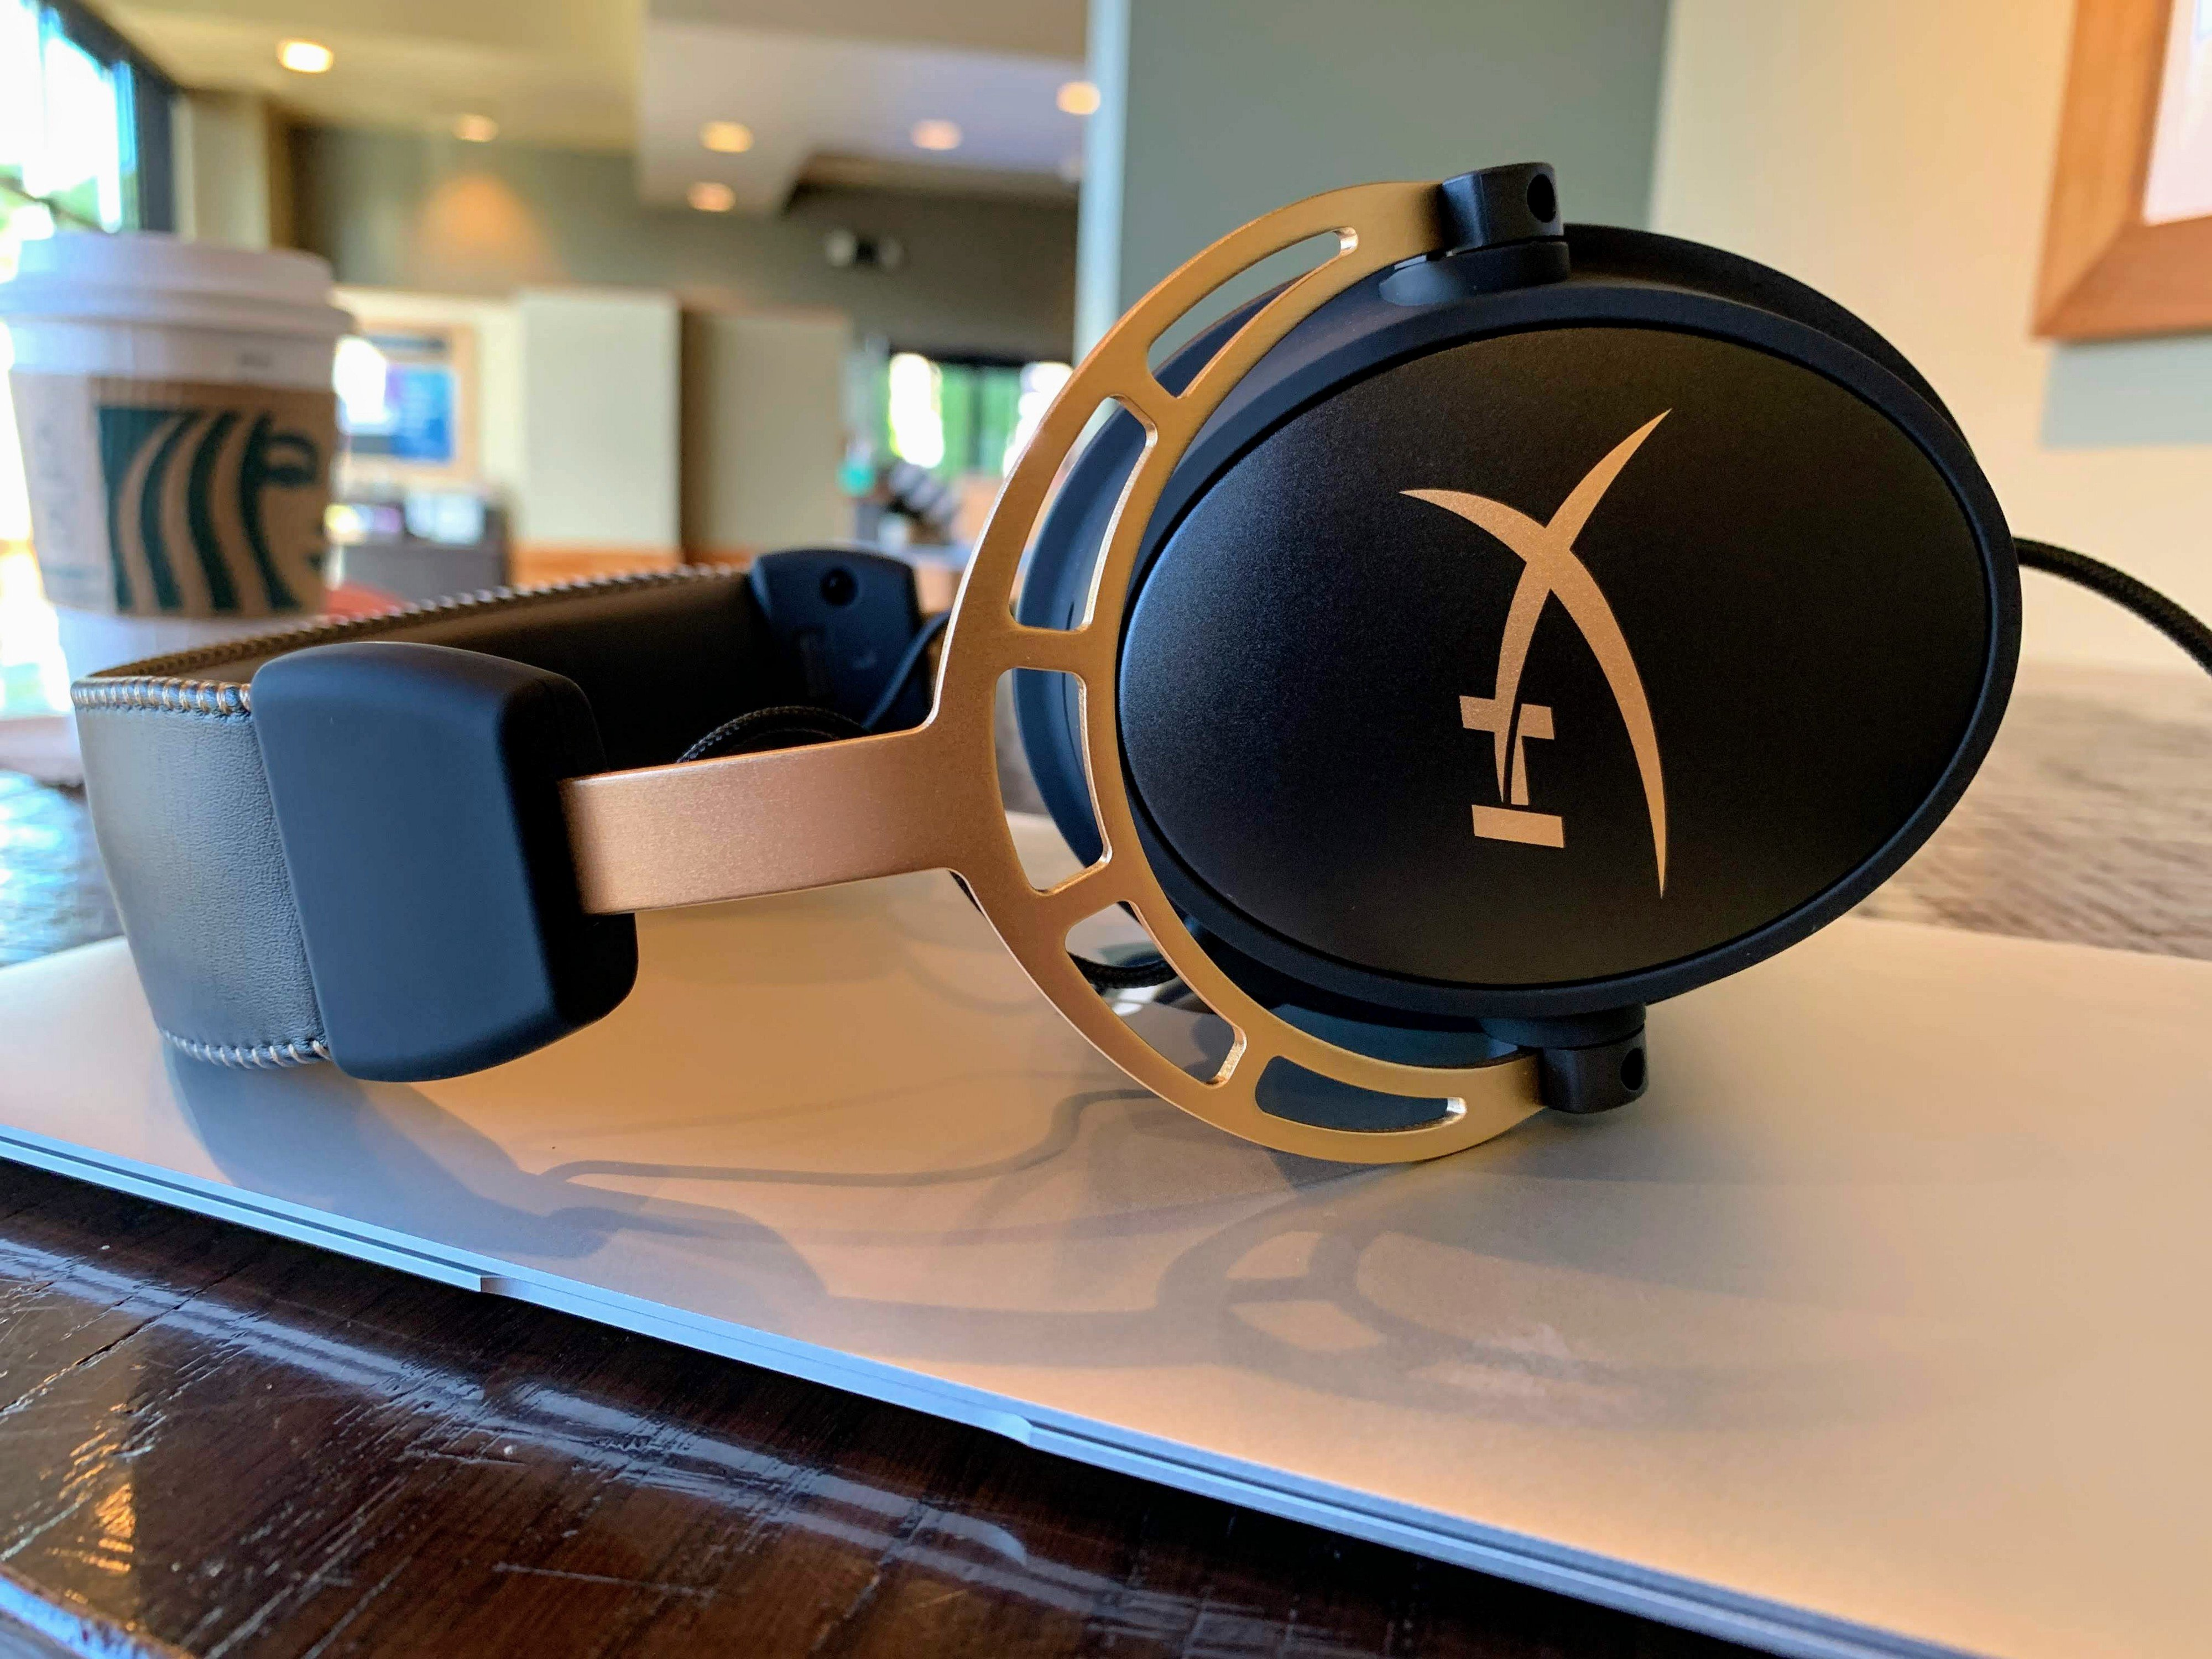 The HyperX Cloud Alpha, special gold color edition. Photo taken by Alex Rowe.